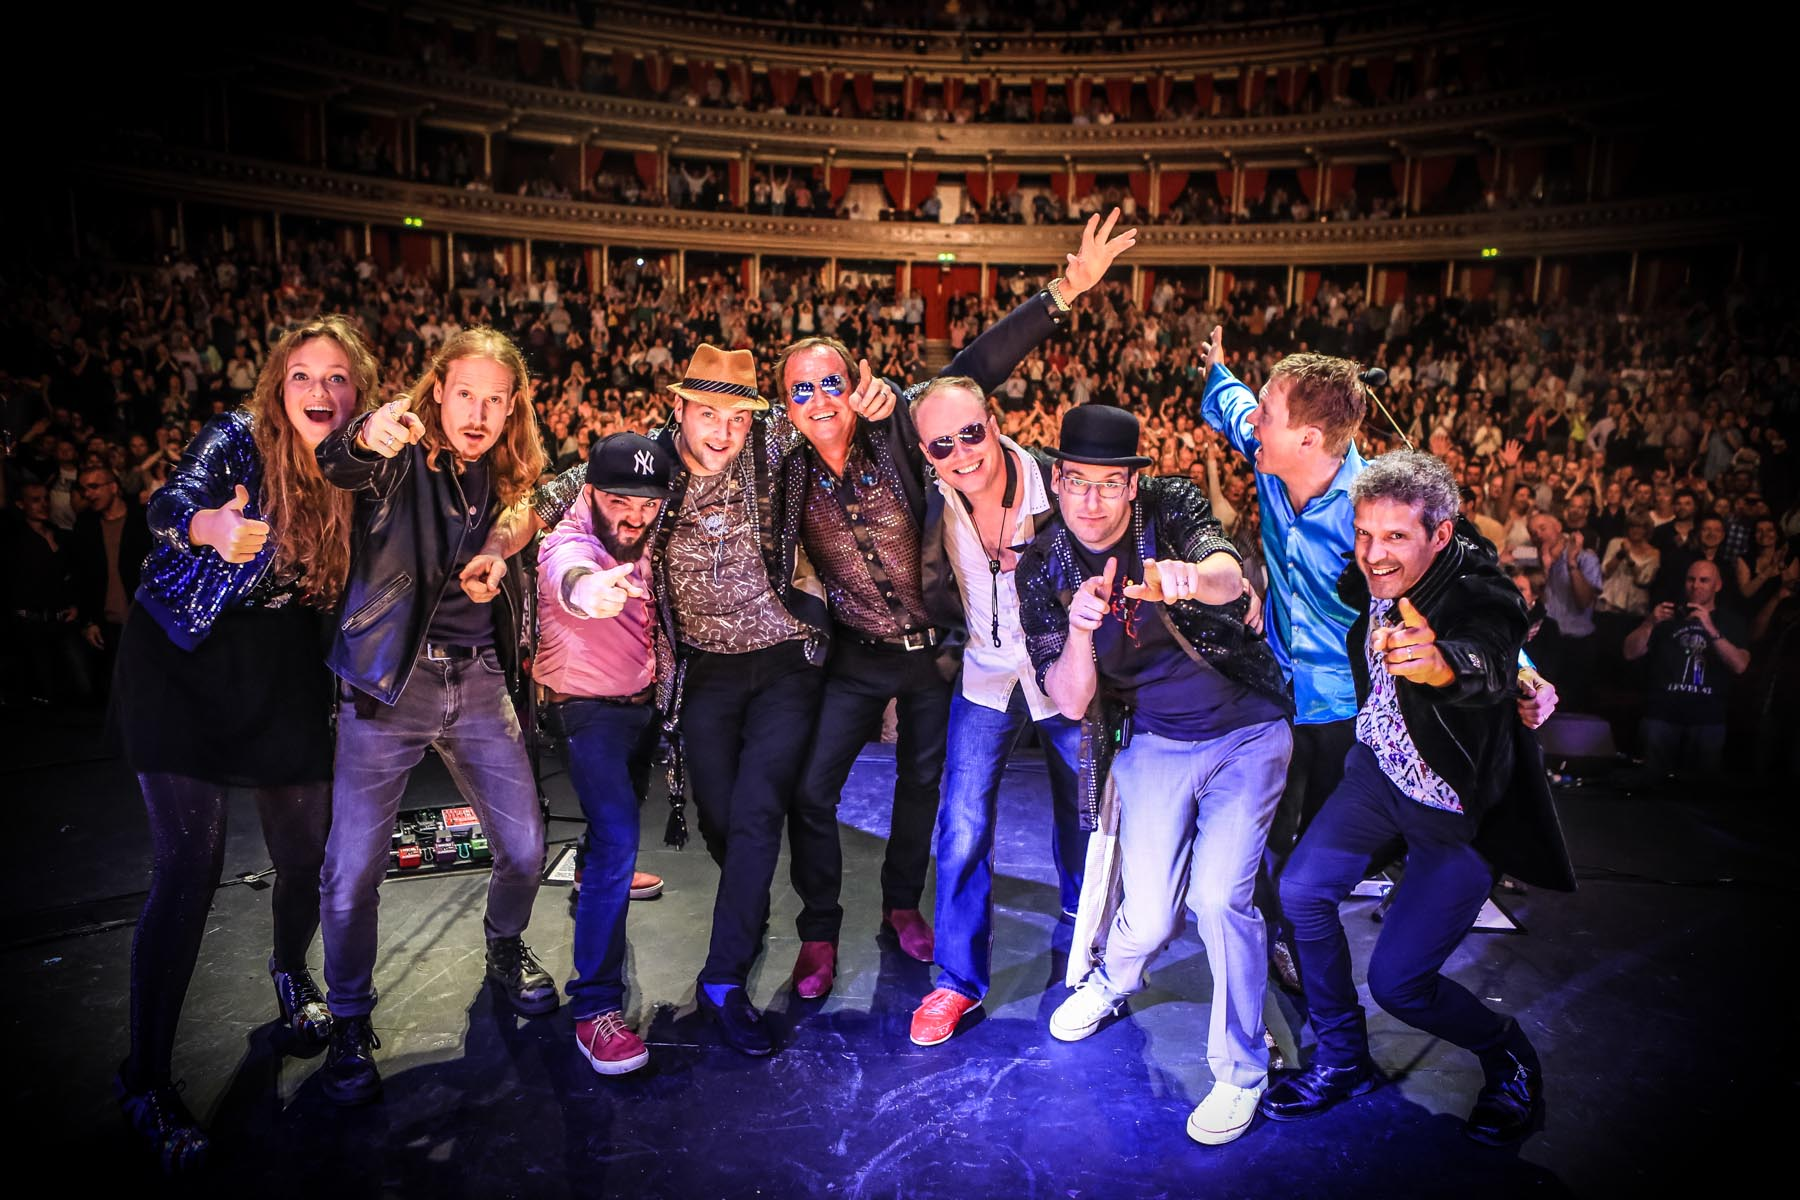 Level 42 at the Royal Albert Hall by Christie Goodwin